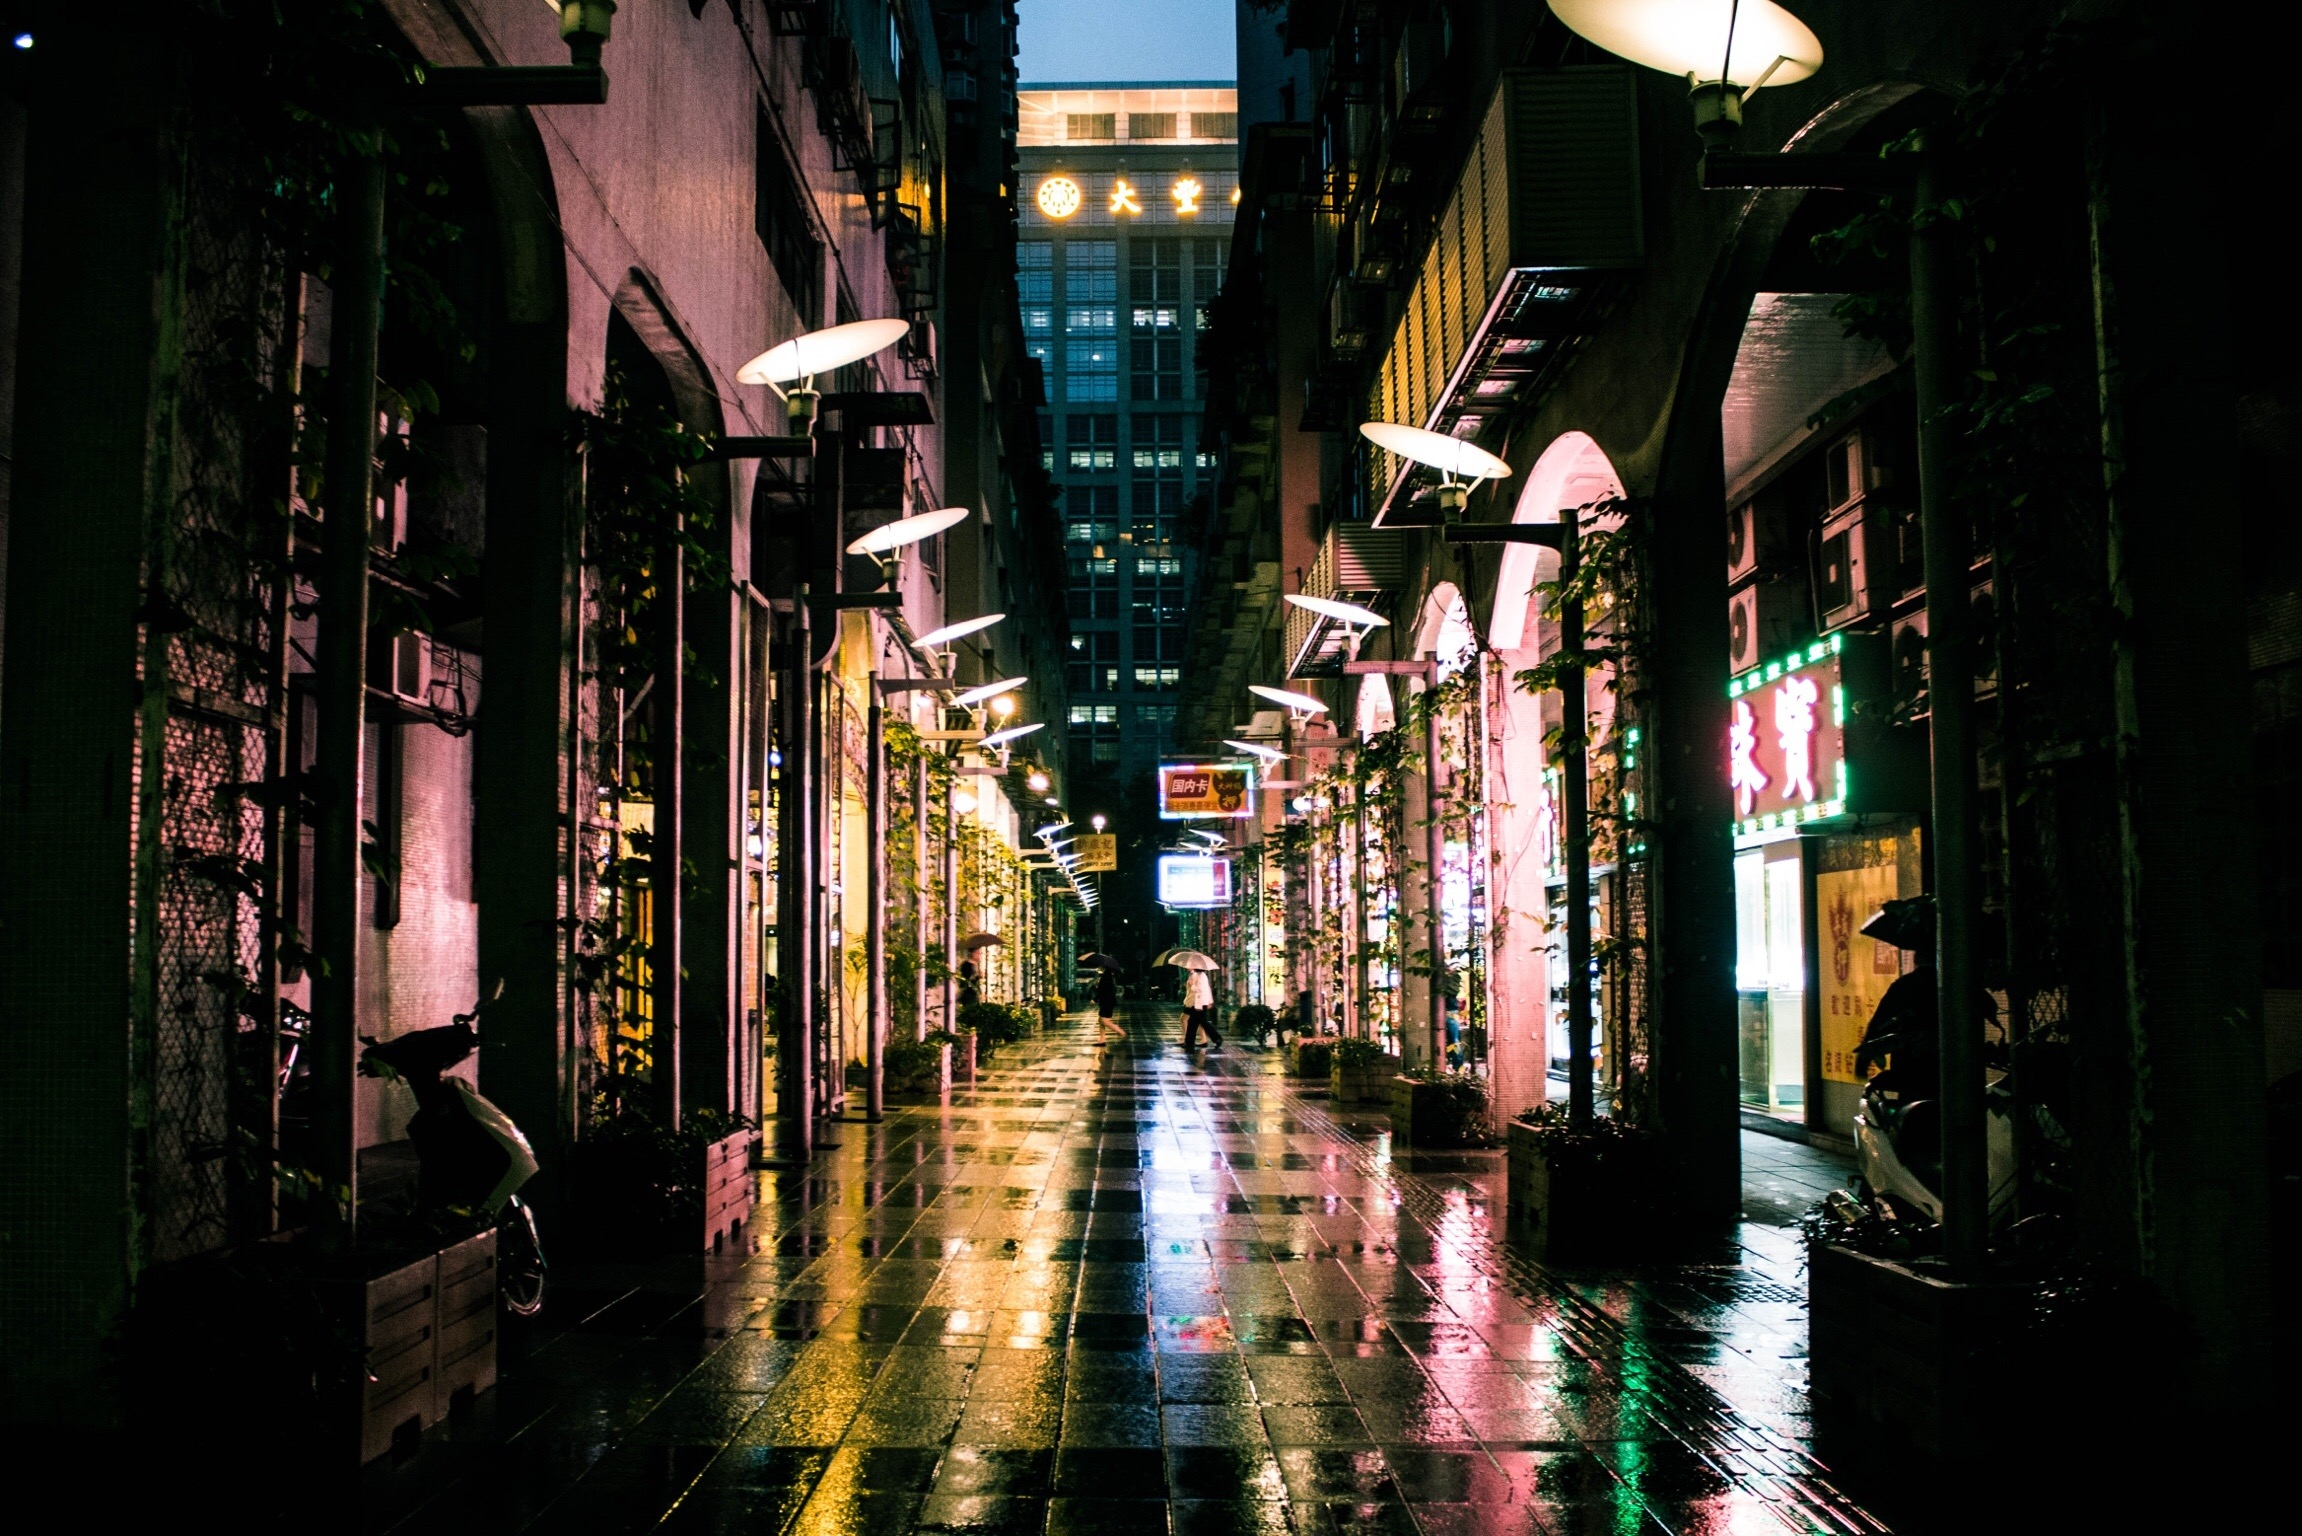 city-cityscape-street-alley-street-lights_t20_wQzO2W